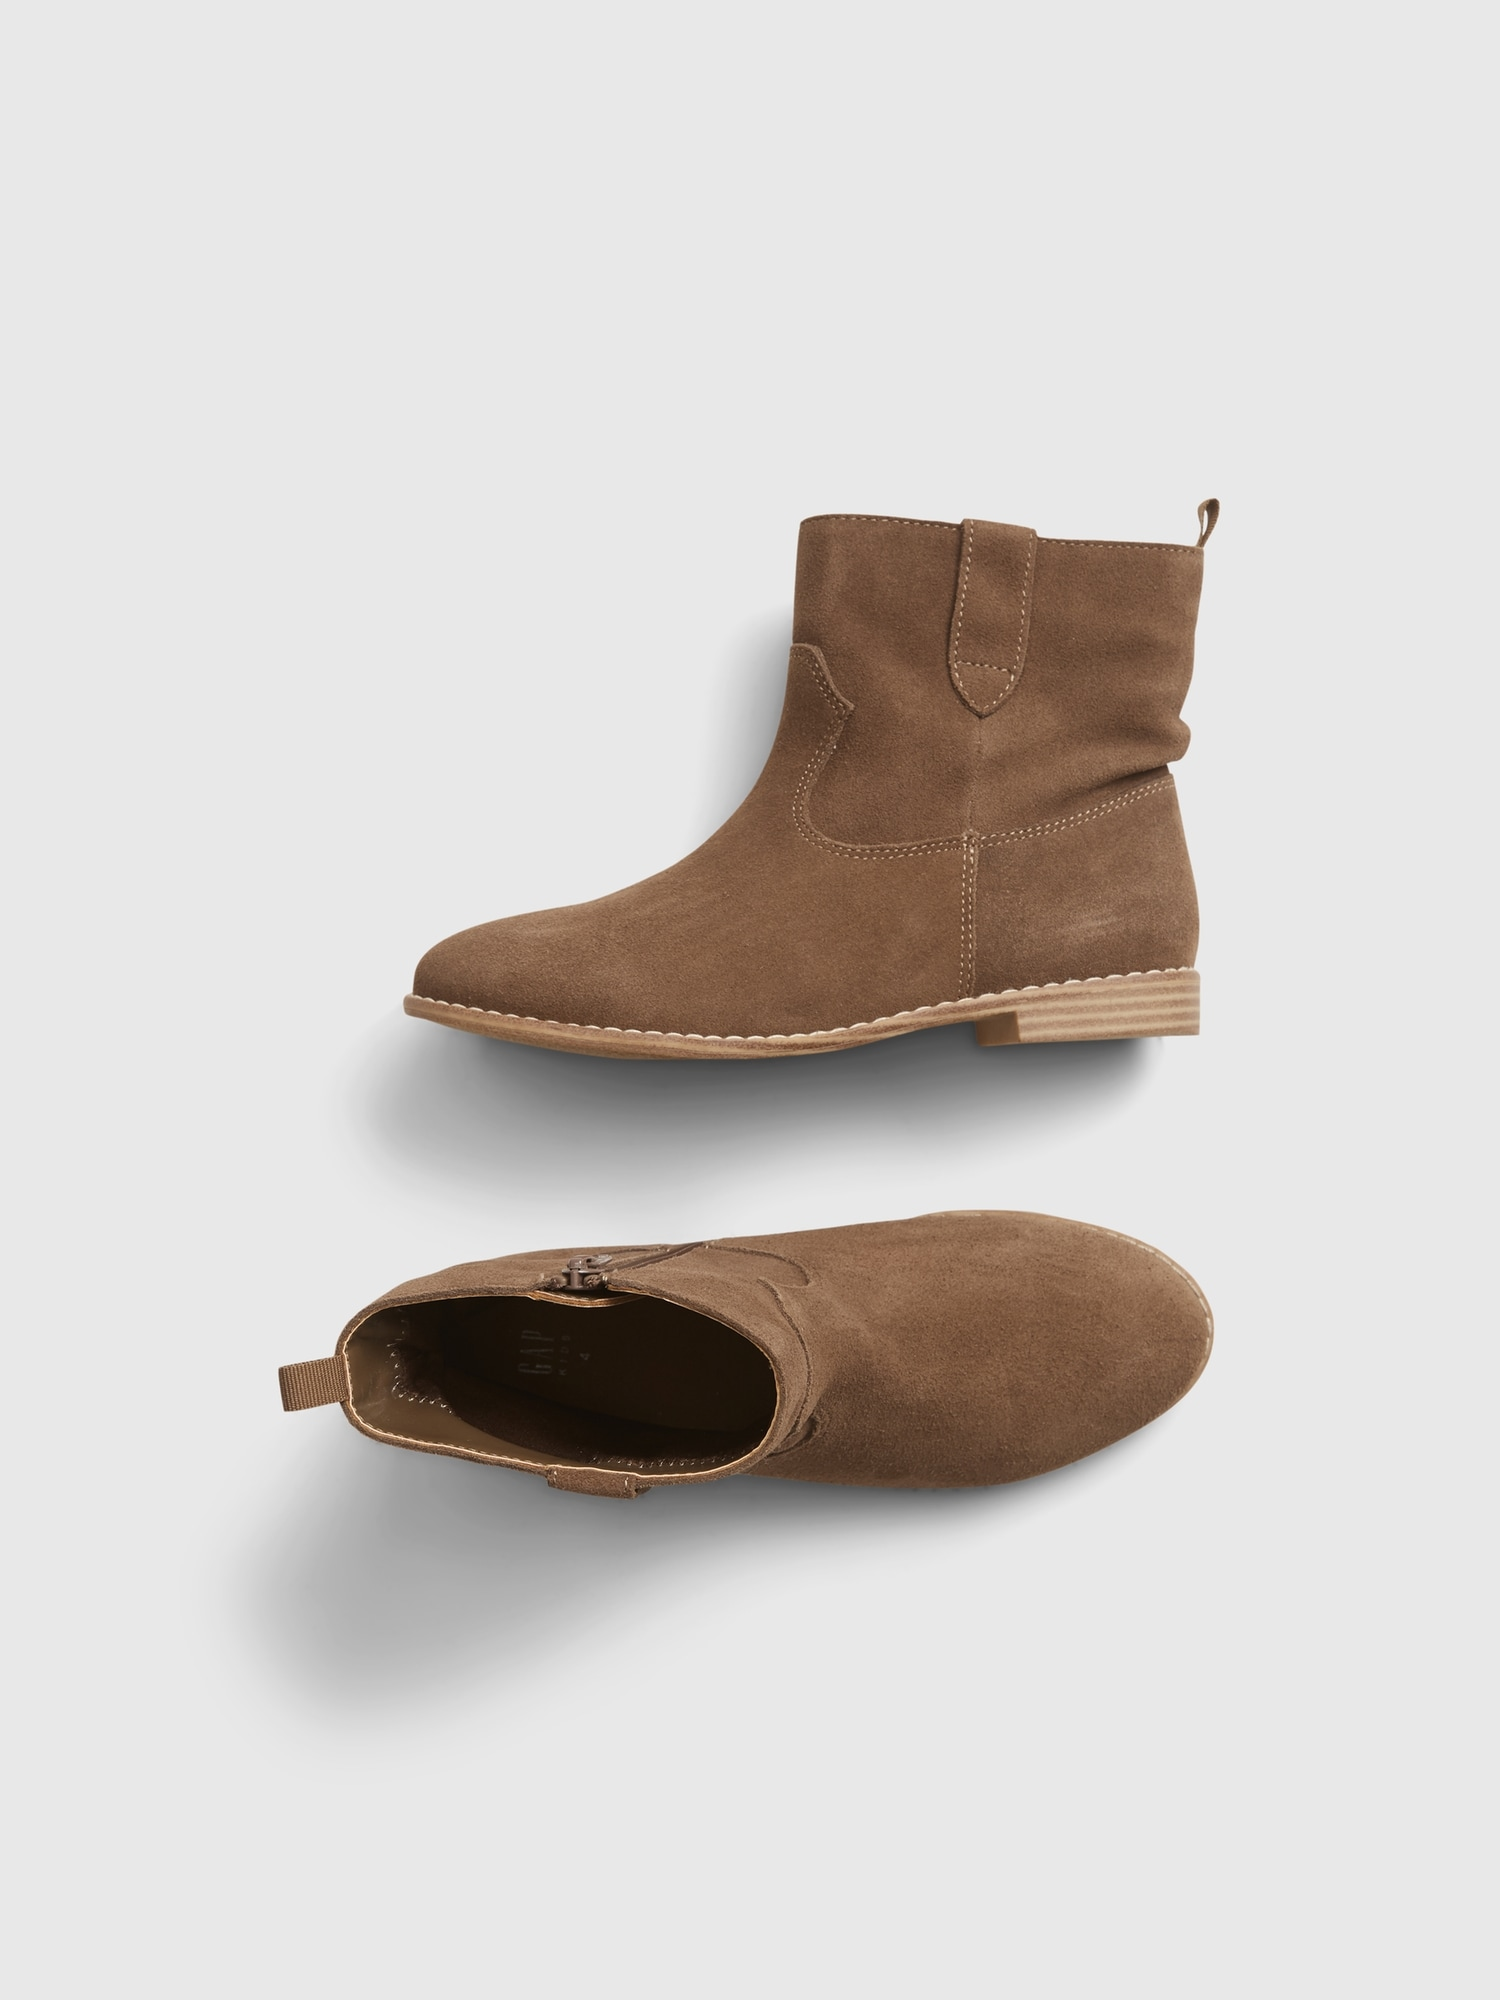 Kids Slouchy Ankle Boots | Gap